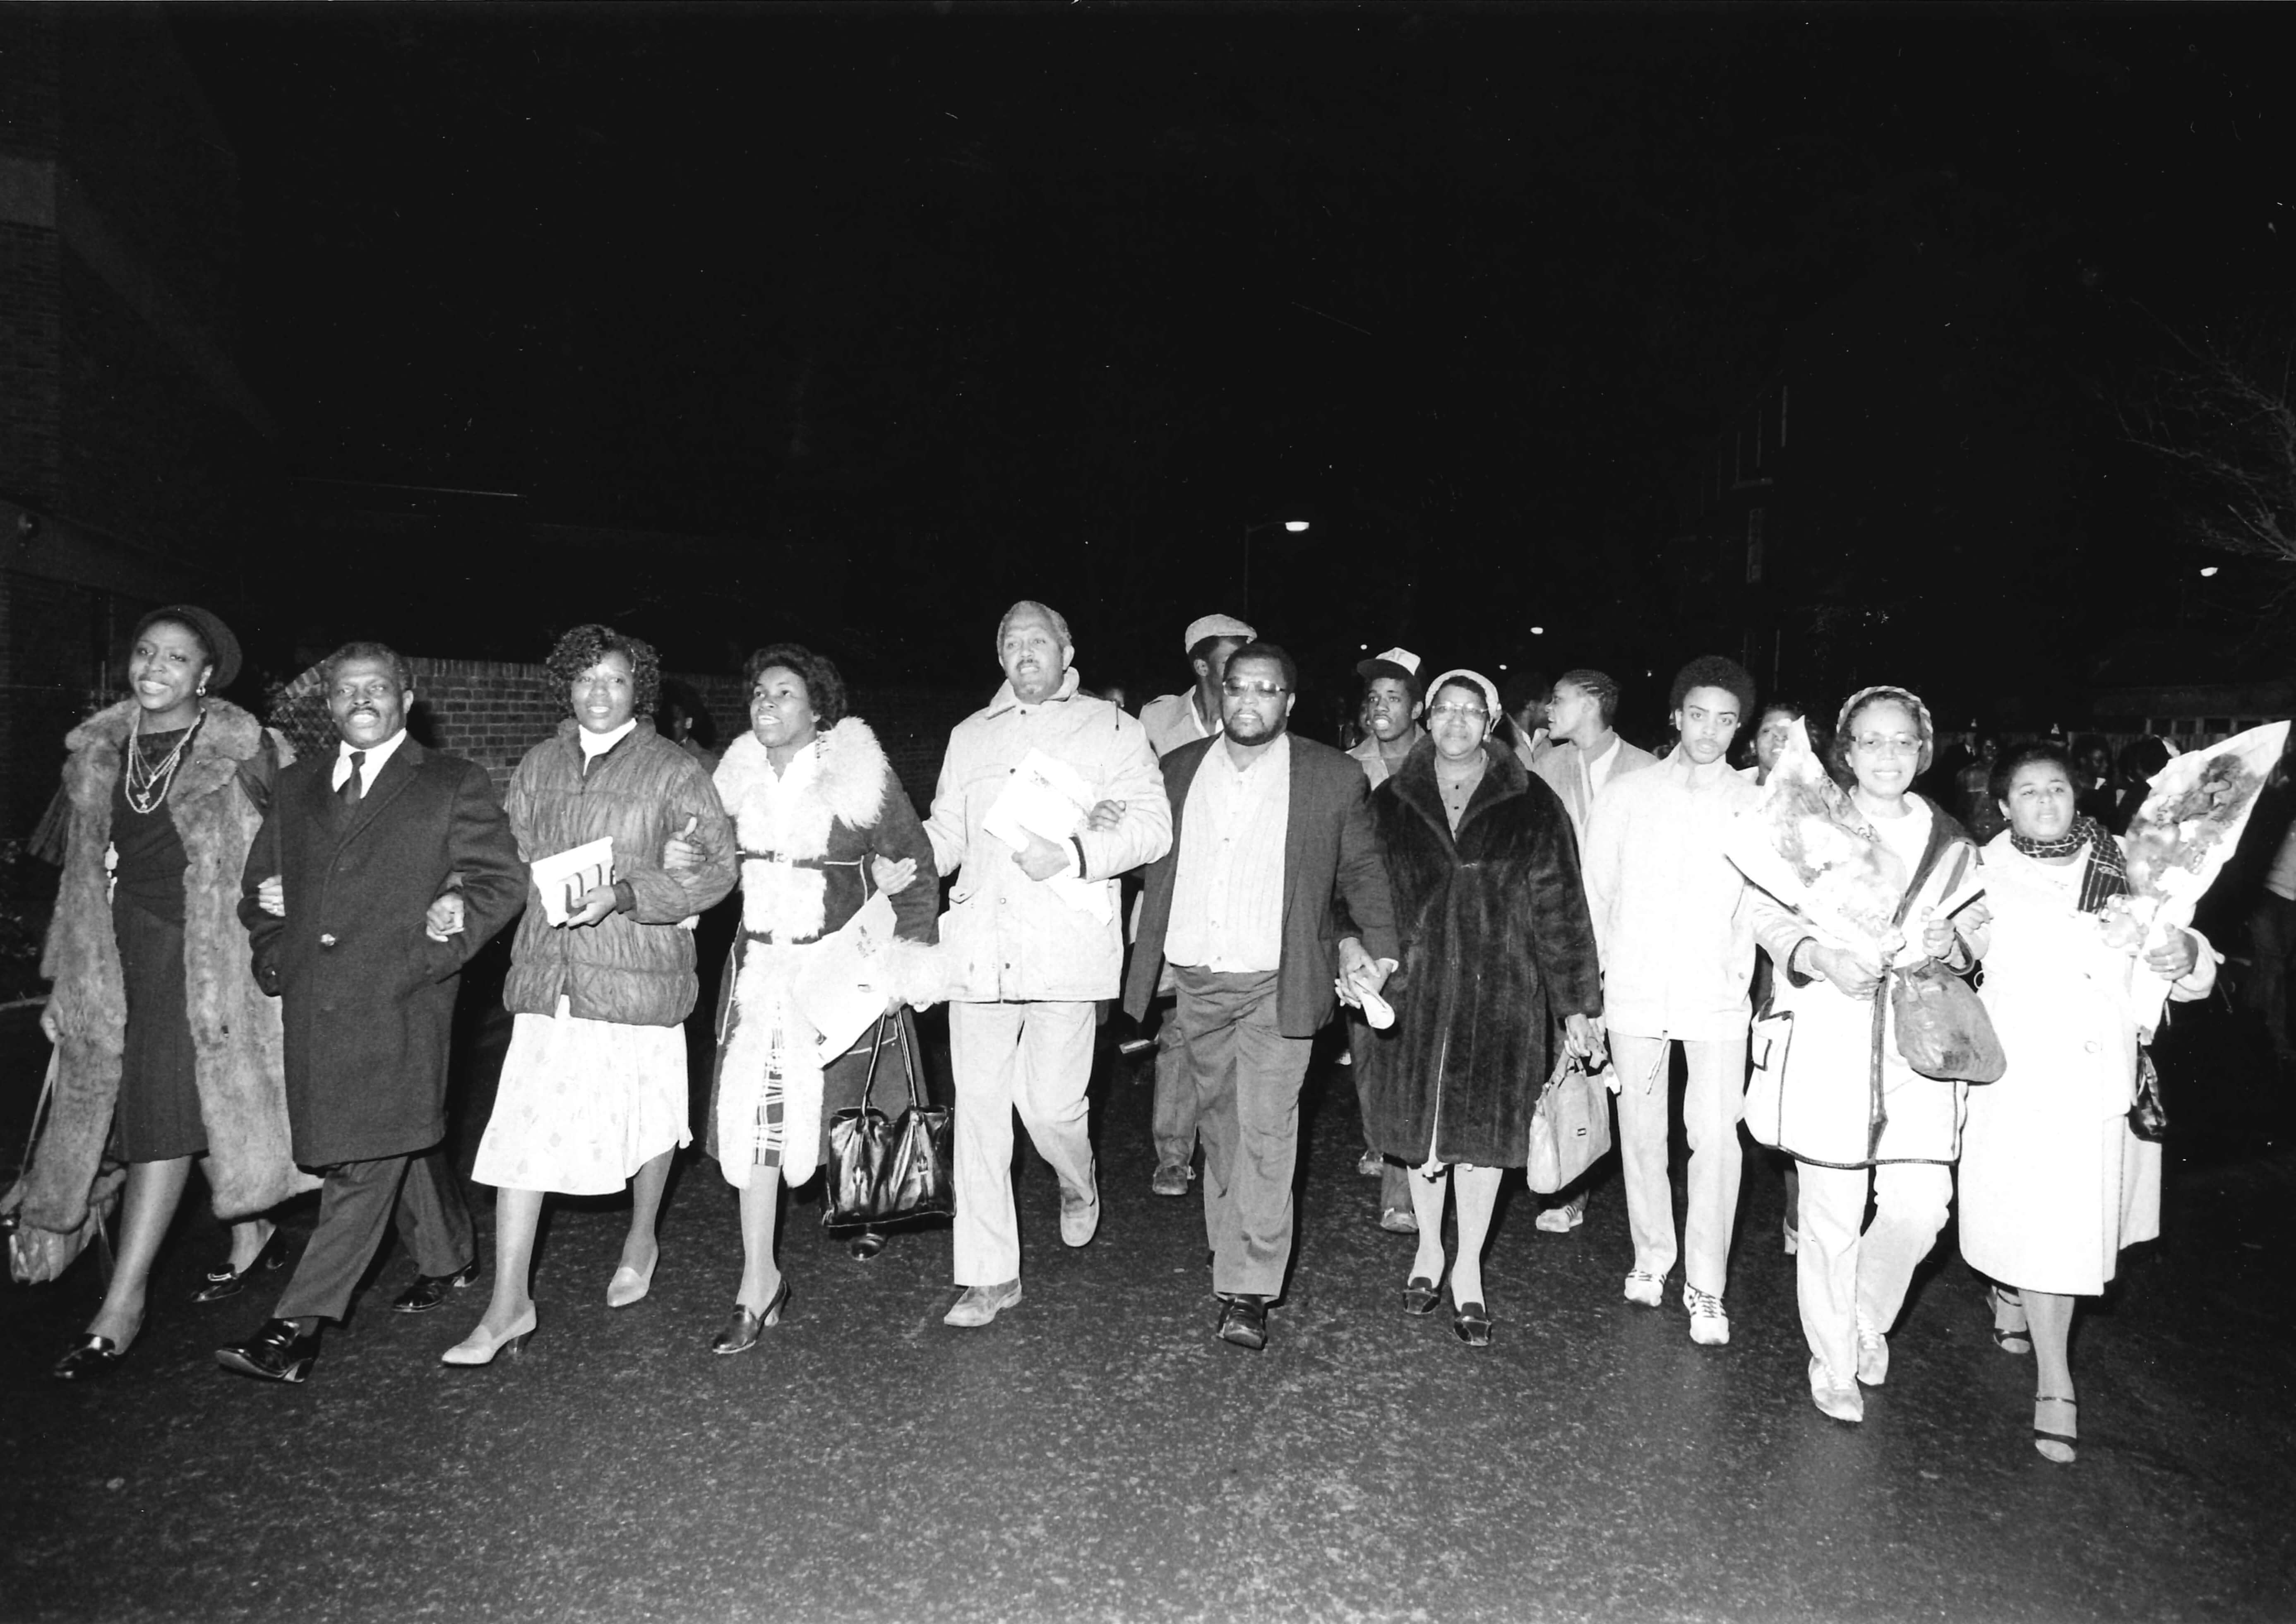 Photo taken at night, with John La Rose (centre) and the families of victims walking together, with their arms linked. Shown illuminated by light, against the dark sky.